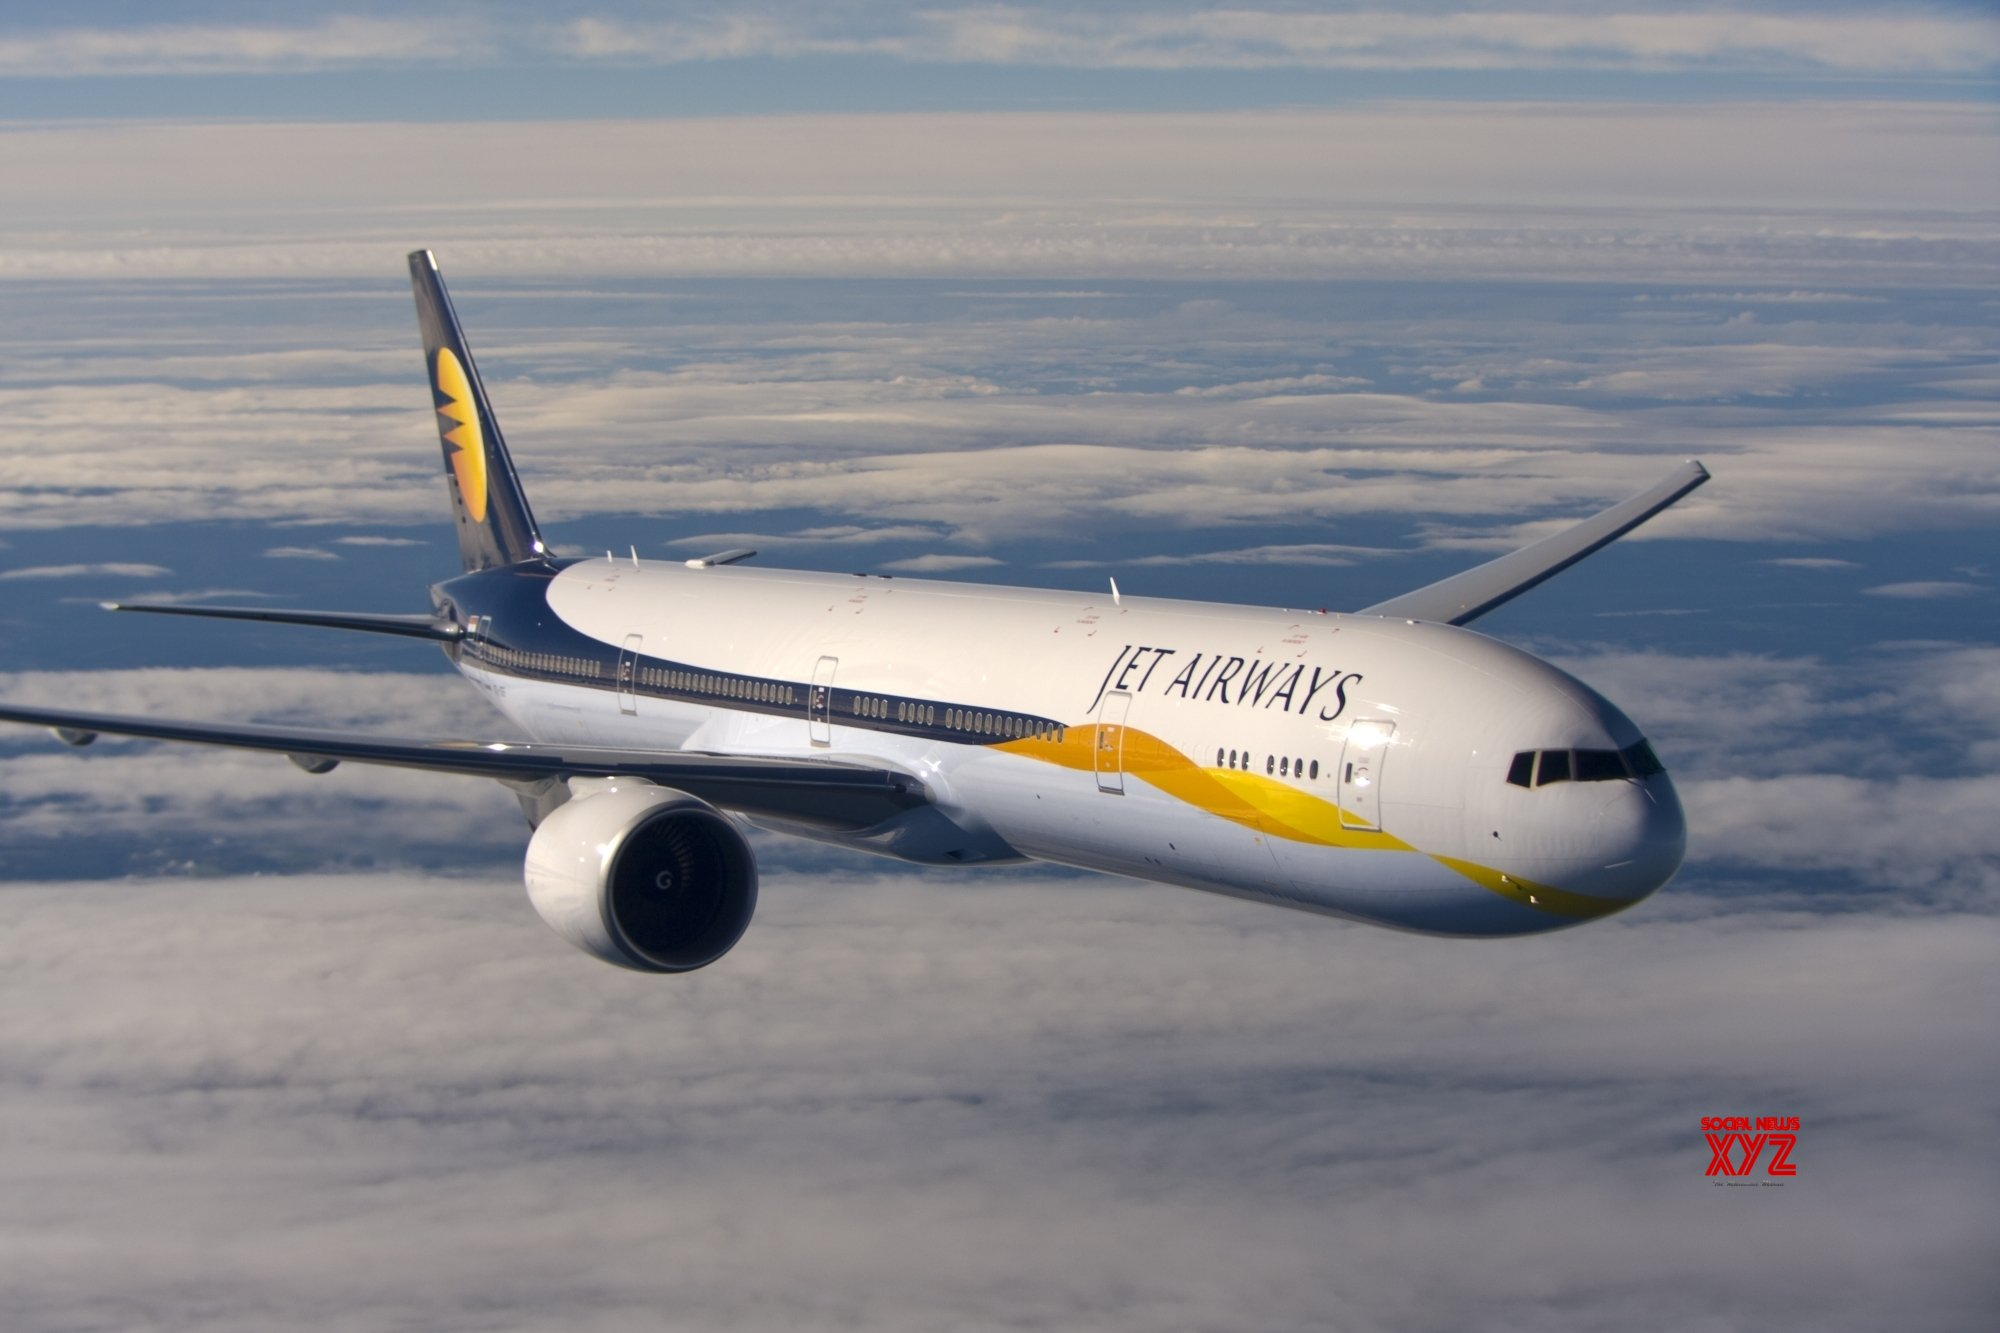 BREAKING NEWS: Jet Airways to suspend operations from tonight